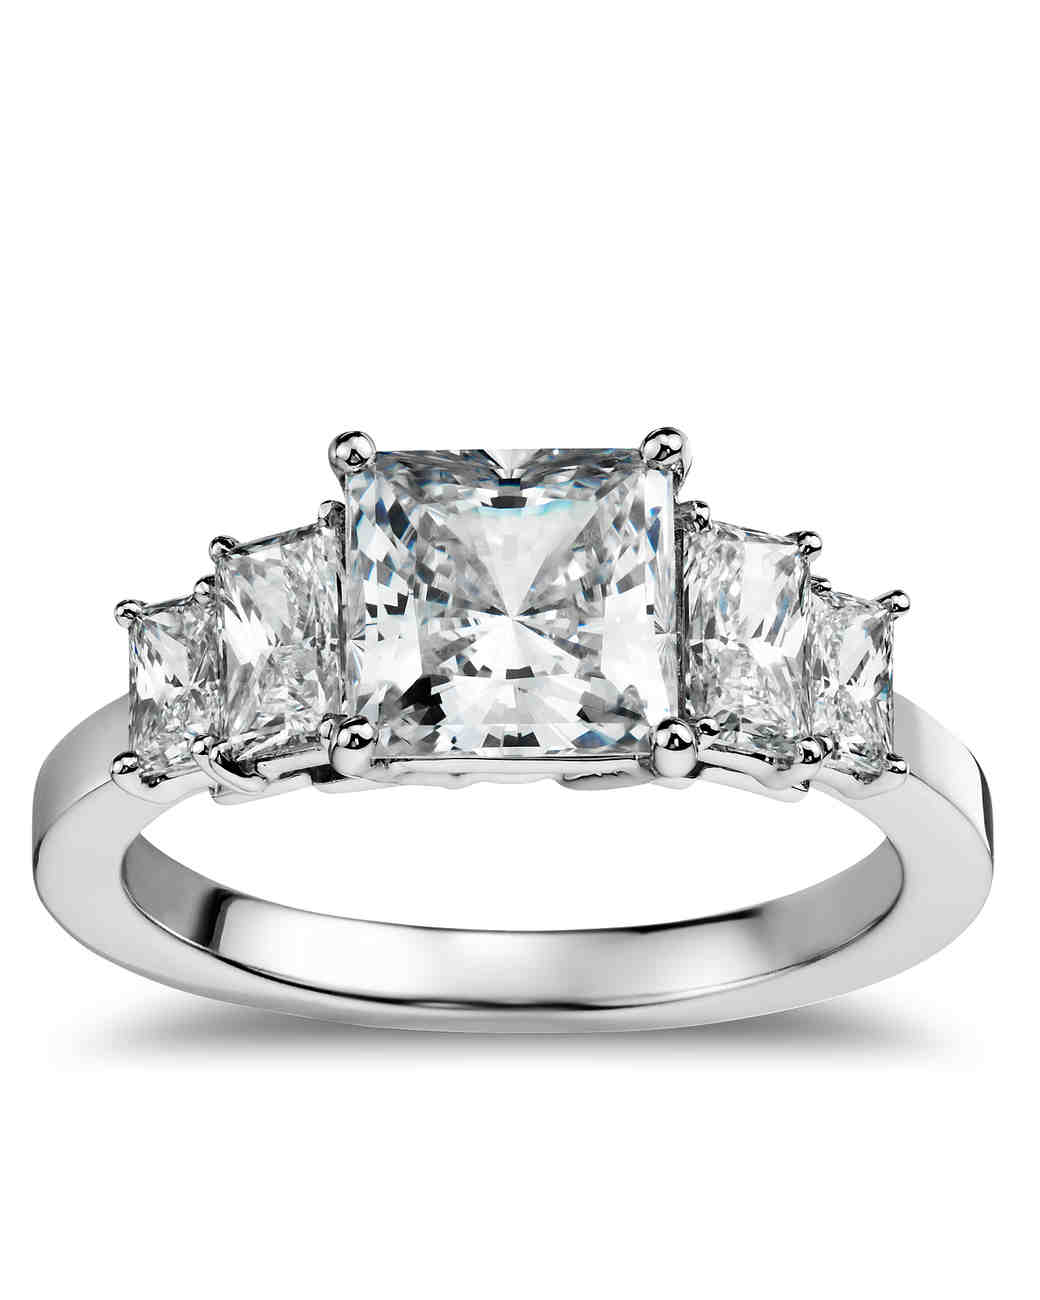 Blue Nile Princesscut Engagement Ring